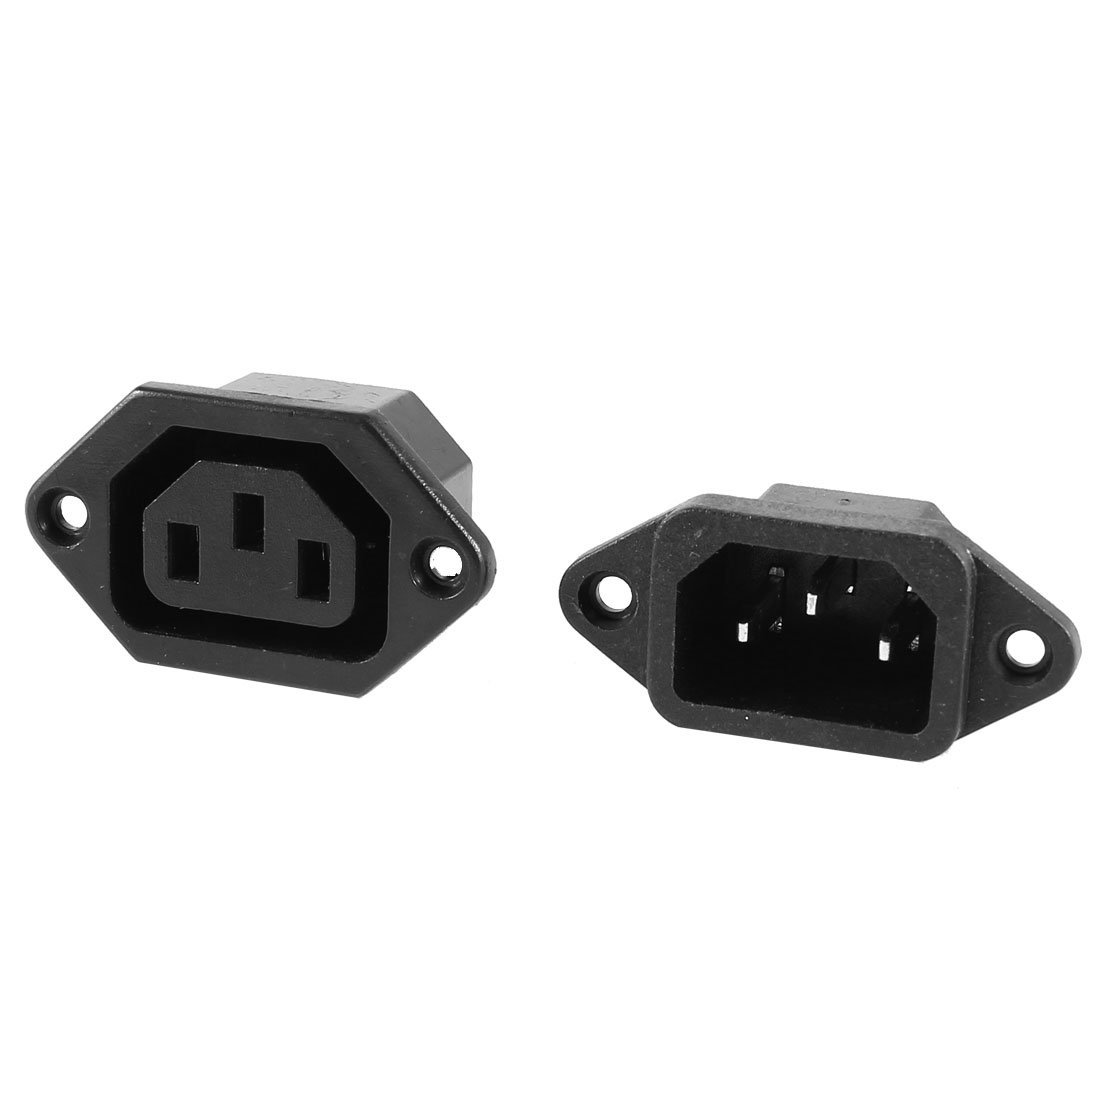 IEC C14 C1 32 Pcs 3-pin Chassis Panel Mount Plug Connector AC 250V 10A Black